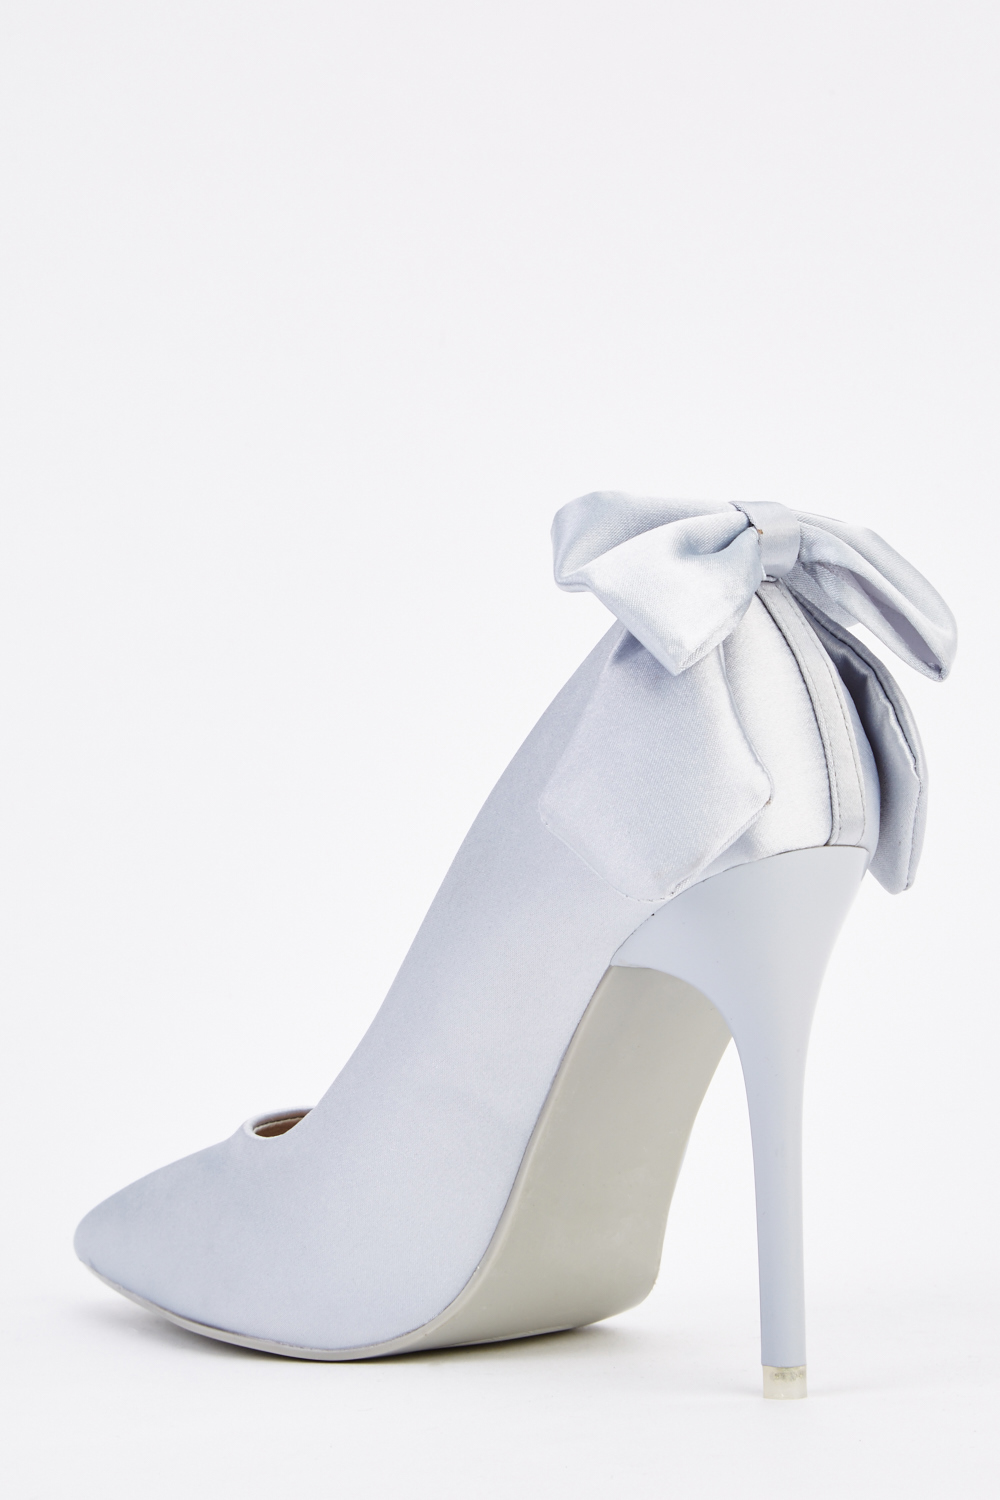 800547a2518 Sateen Bow Back Heels - Just £5